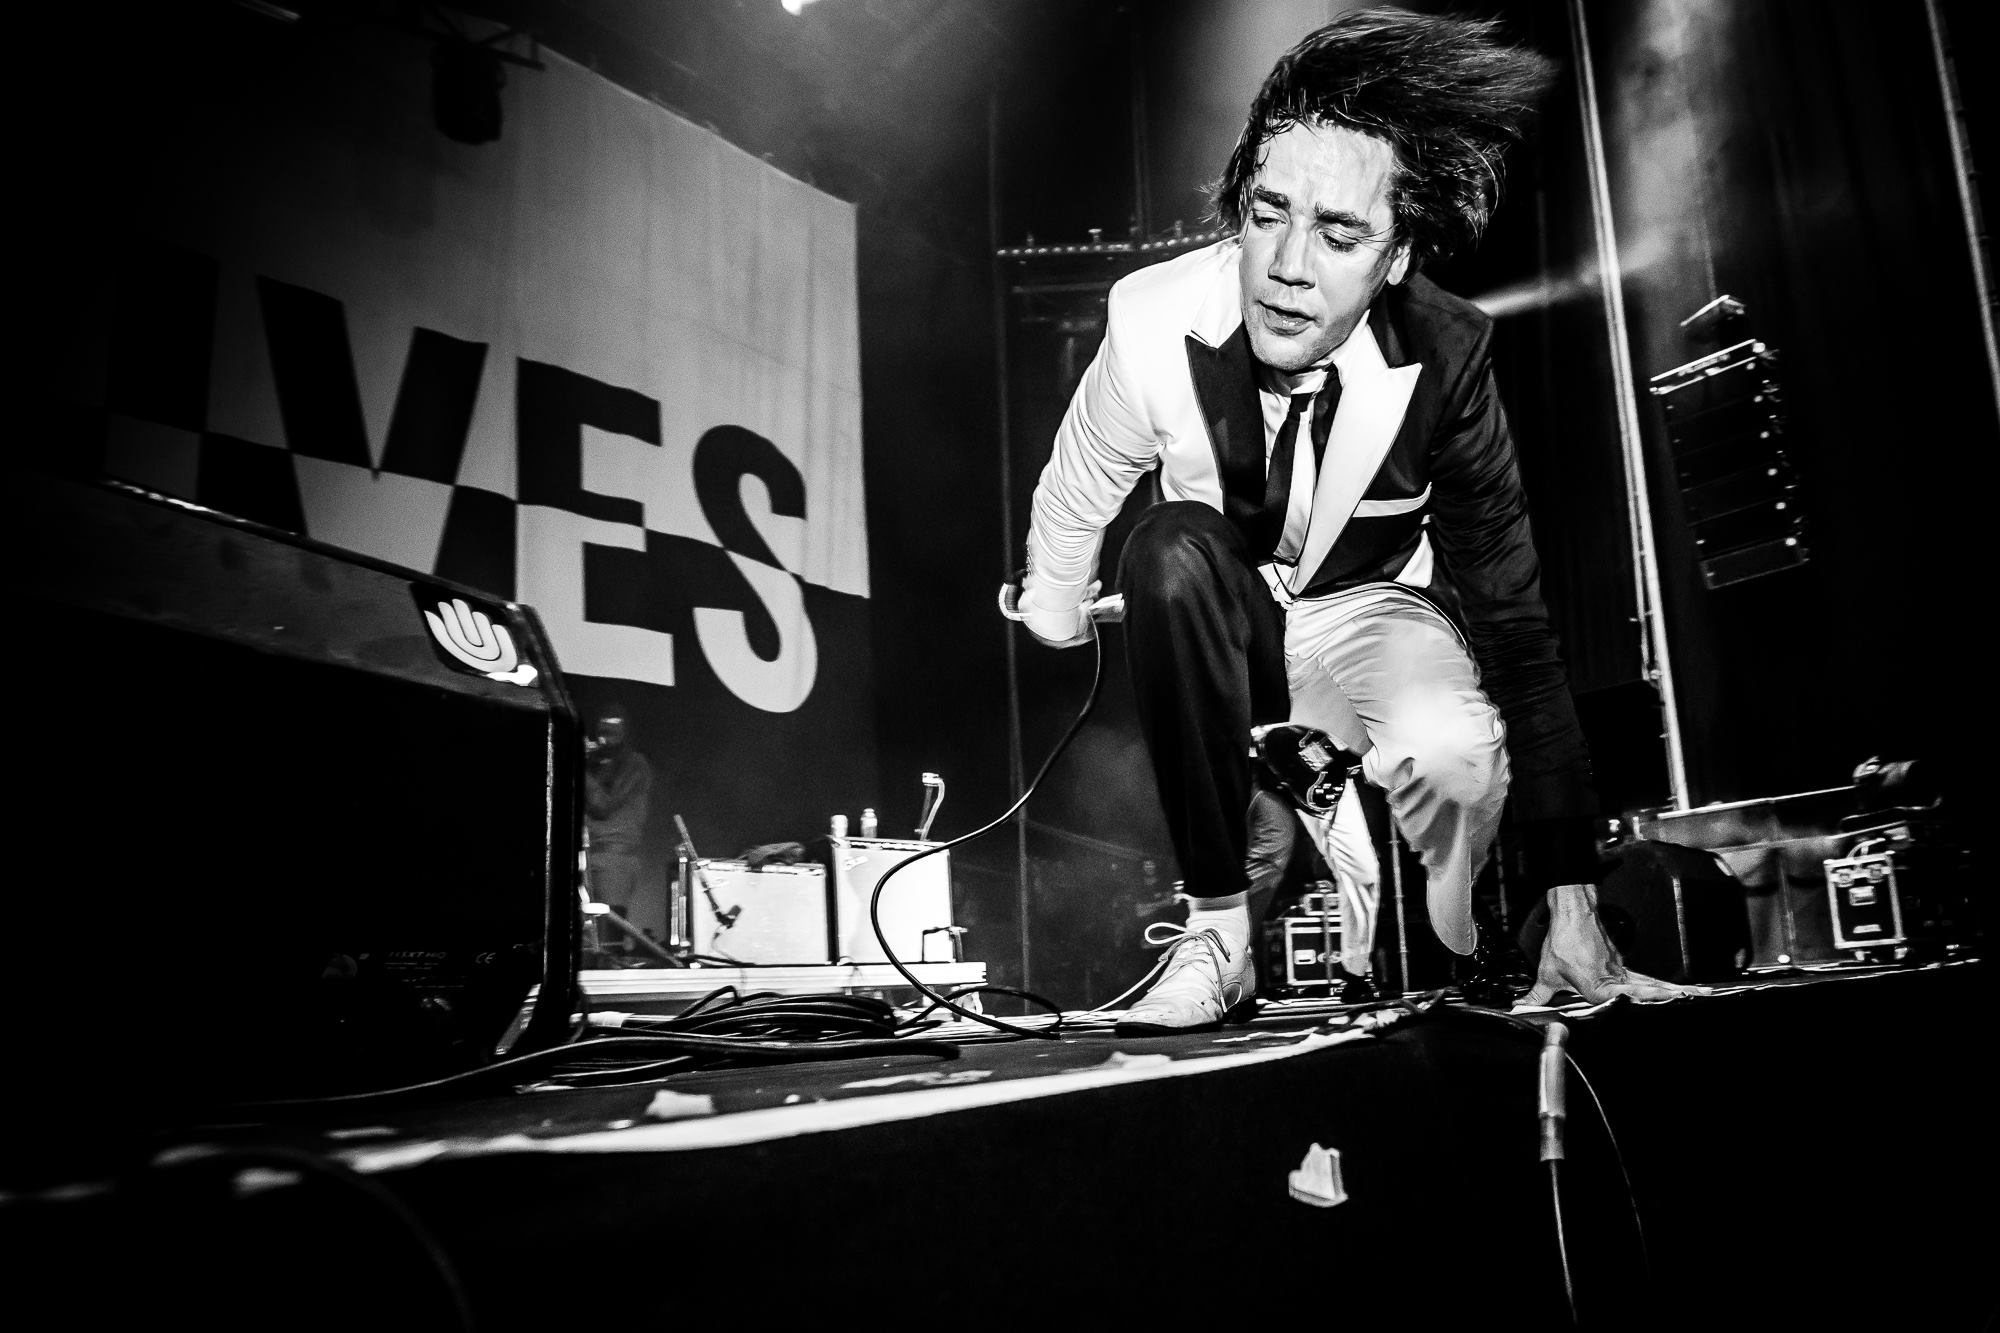 the-hives-low-festival